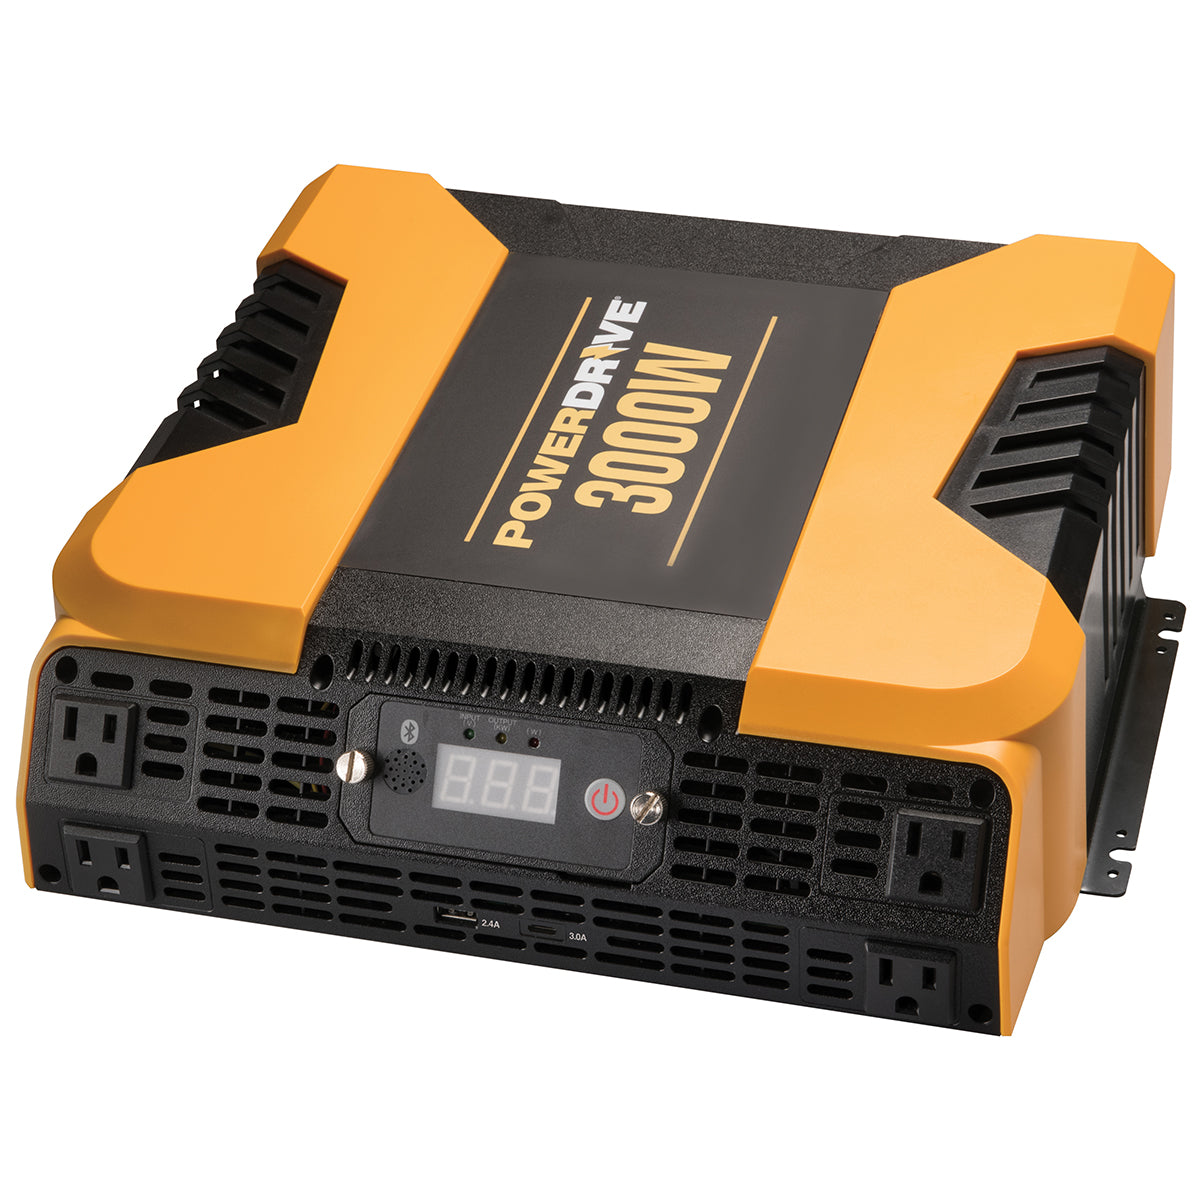 3000 Watt Bluetooth® Power Inverter with 4 AC, 2 USB and APP Interface